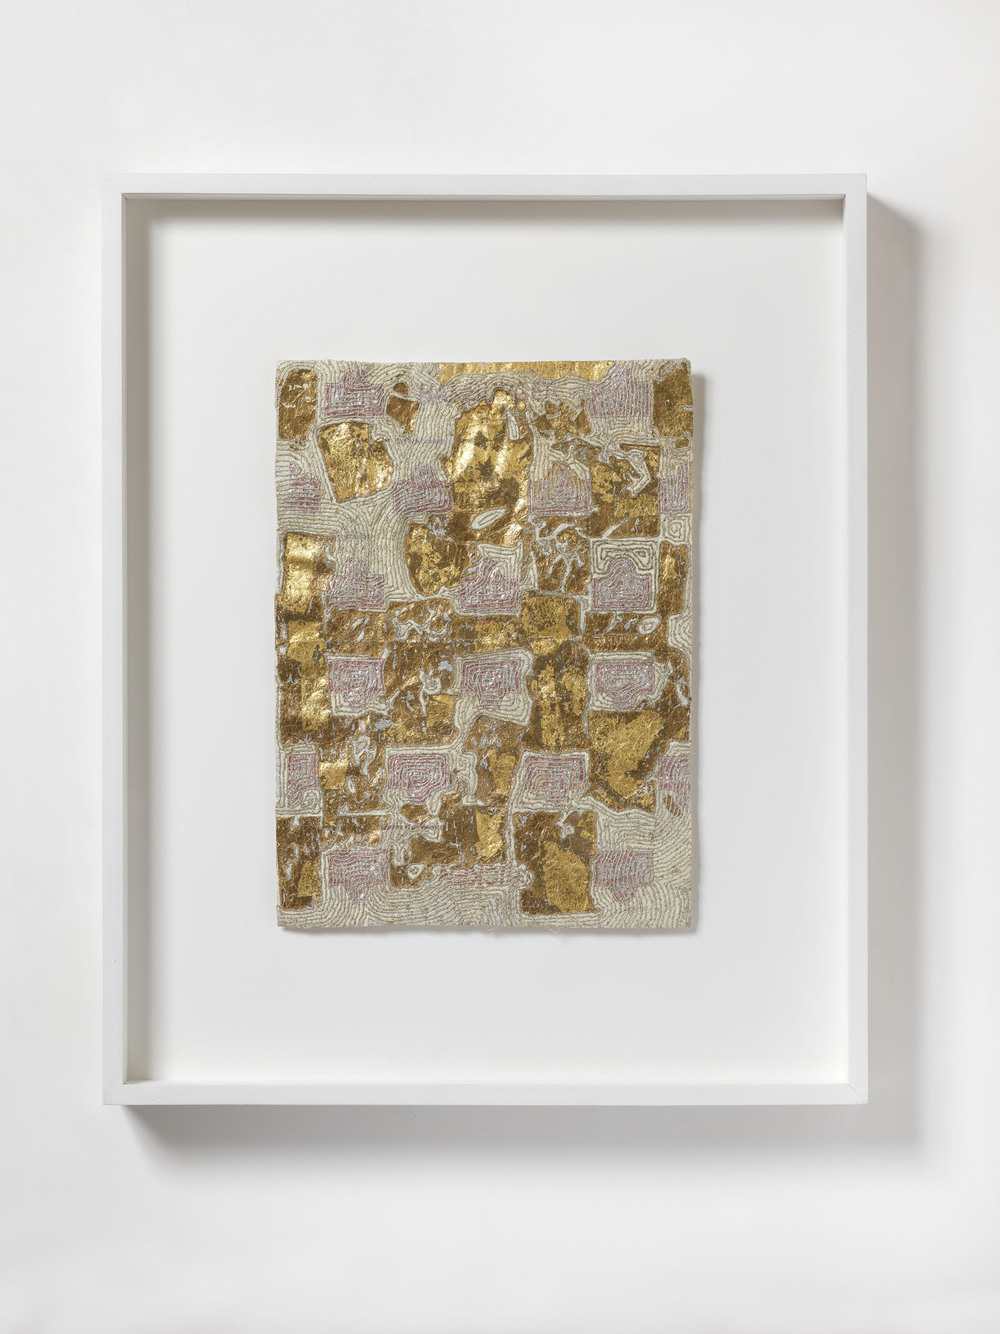 Nicola Ginzel  THREAD  Gold Fragments  2007-09